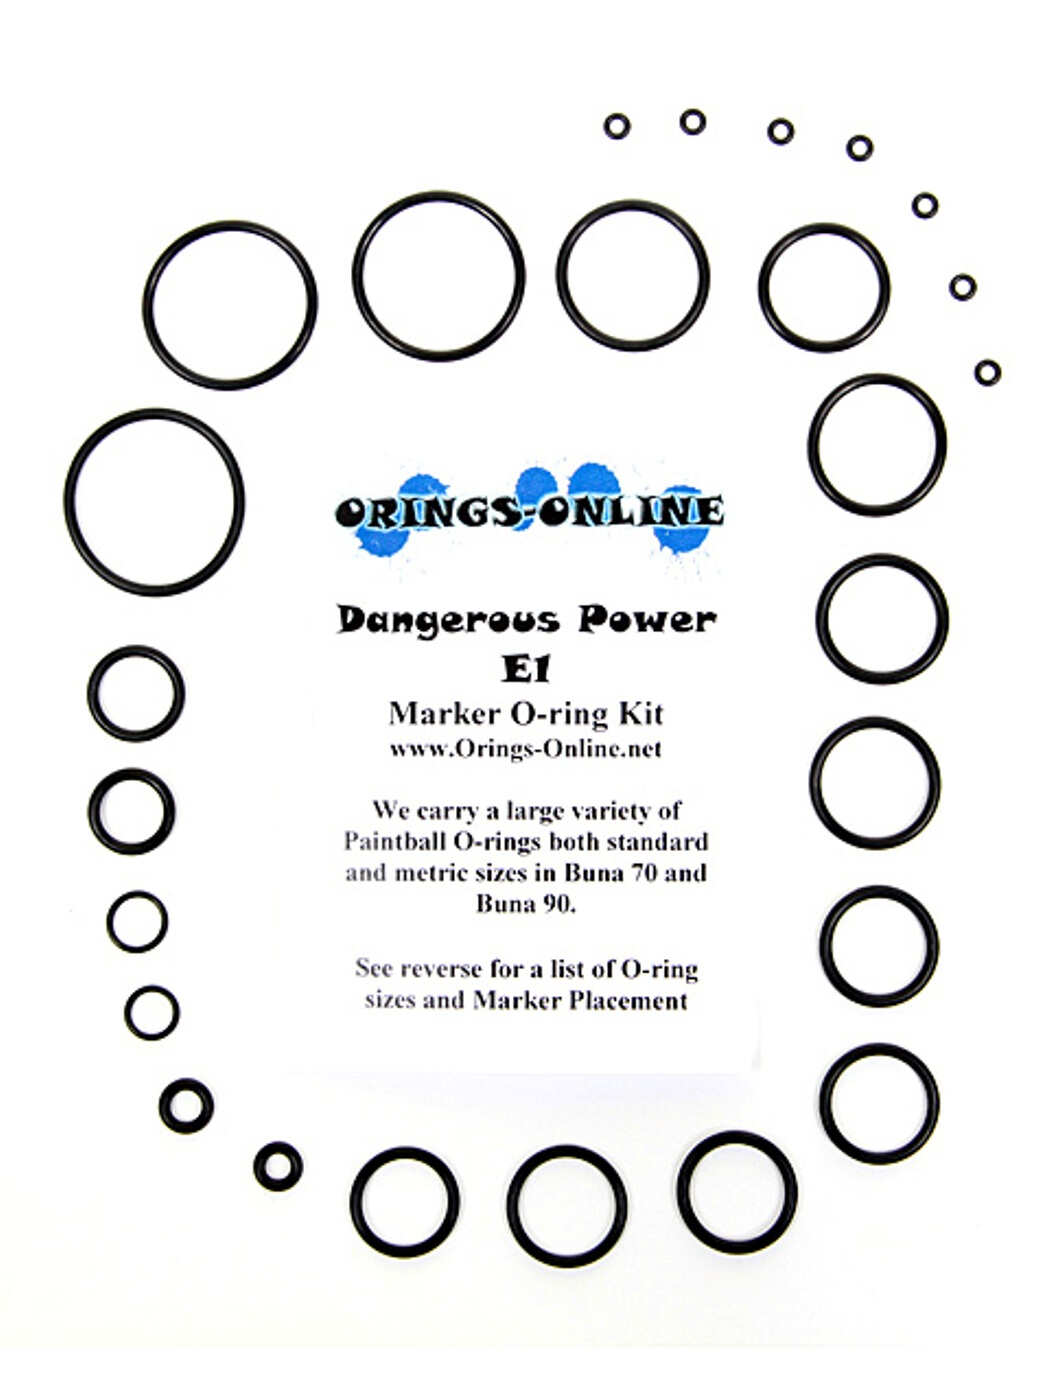 Dangerous Power E1 Marker O-ring Kit